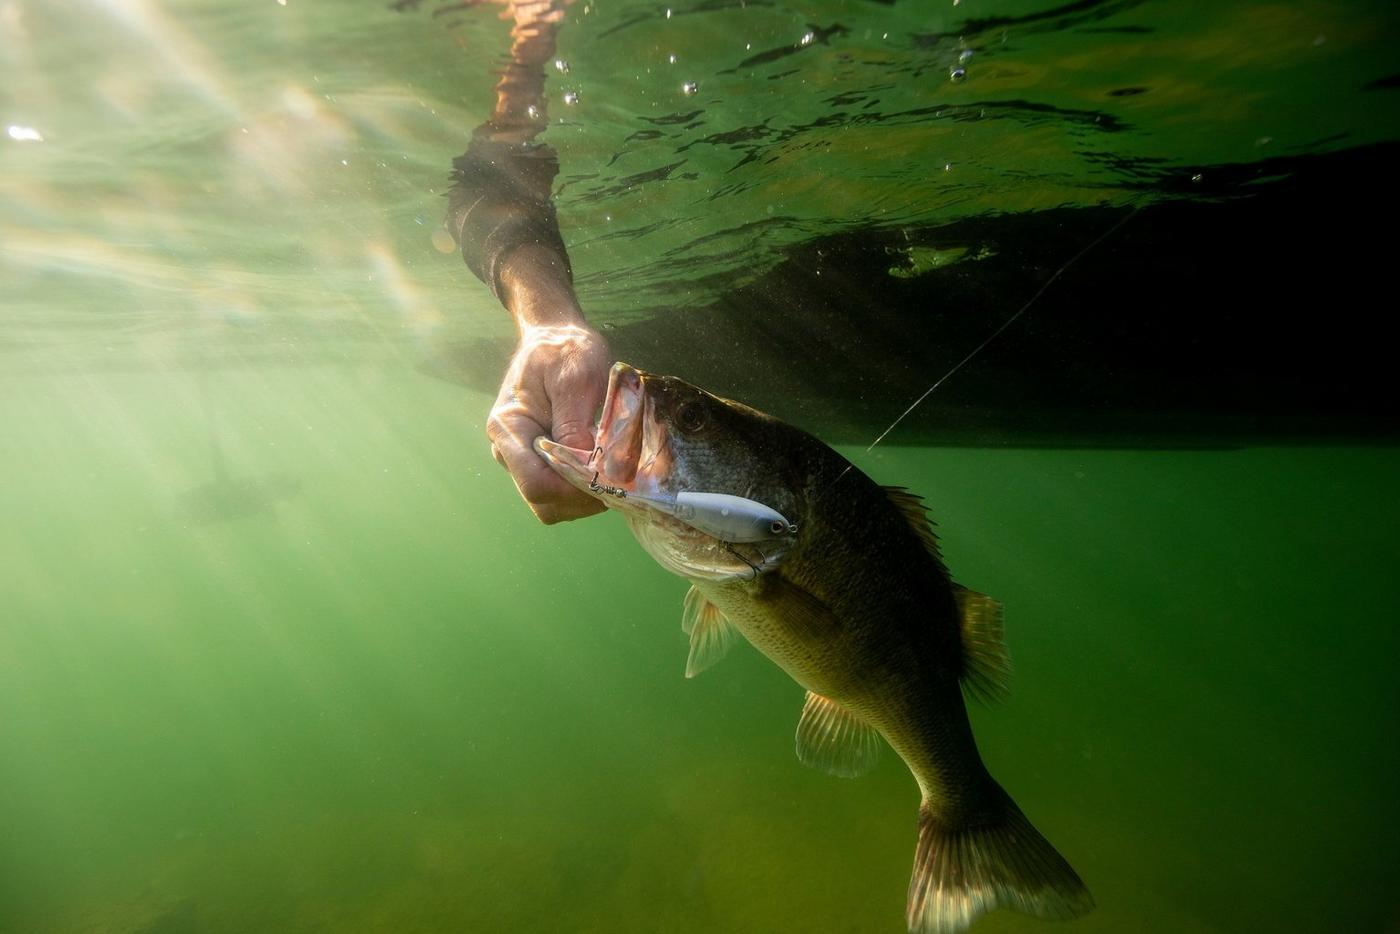 Underwater shot of largemouth bass being pulled out of lake